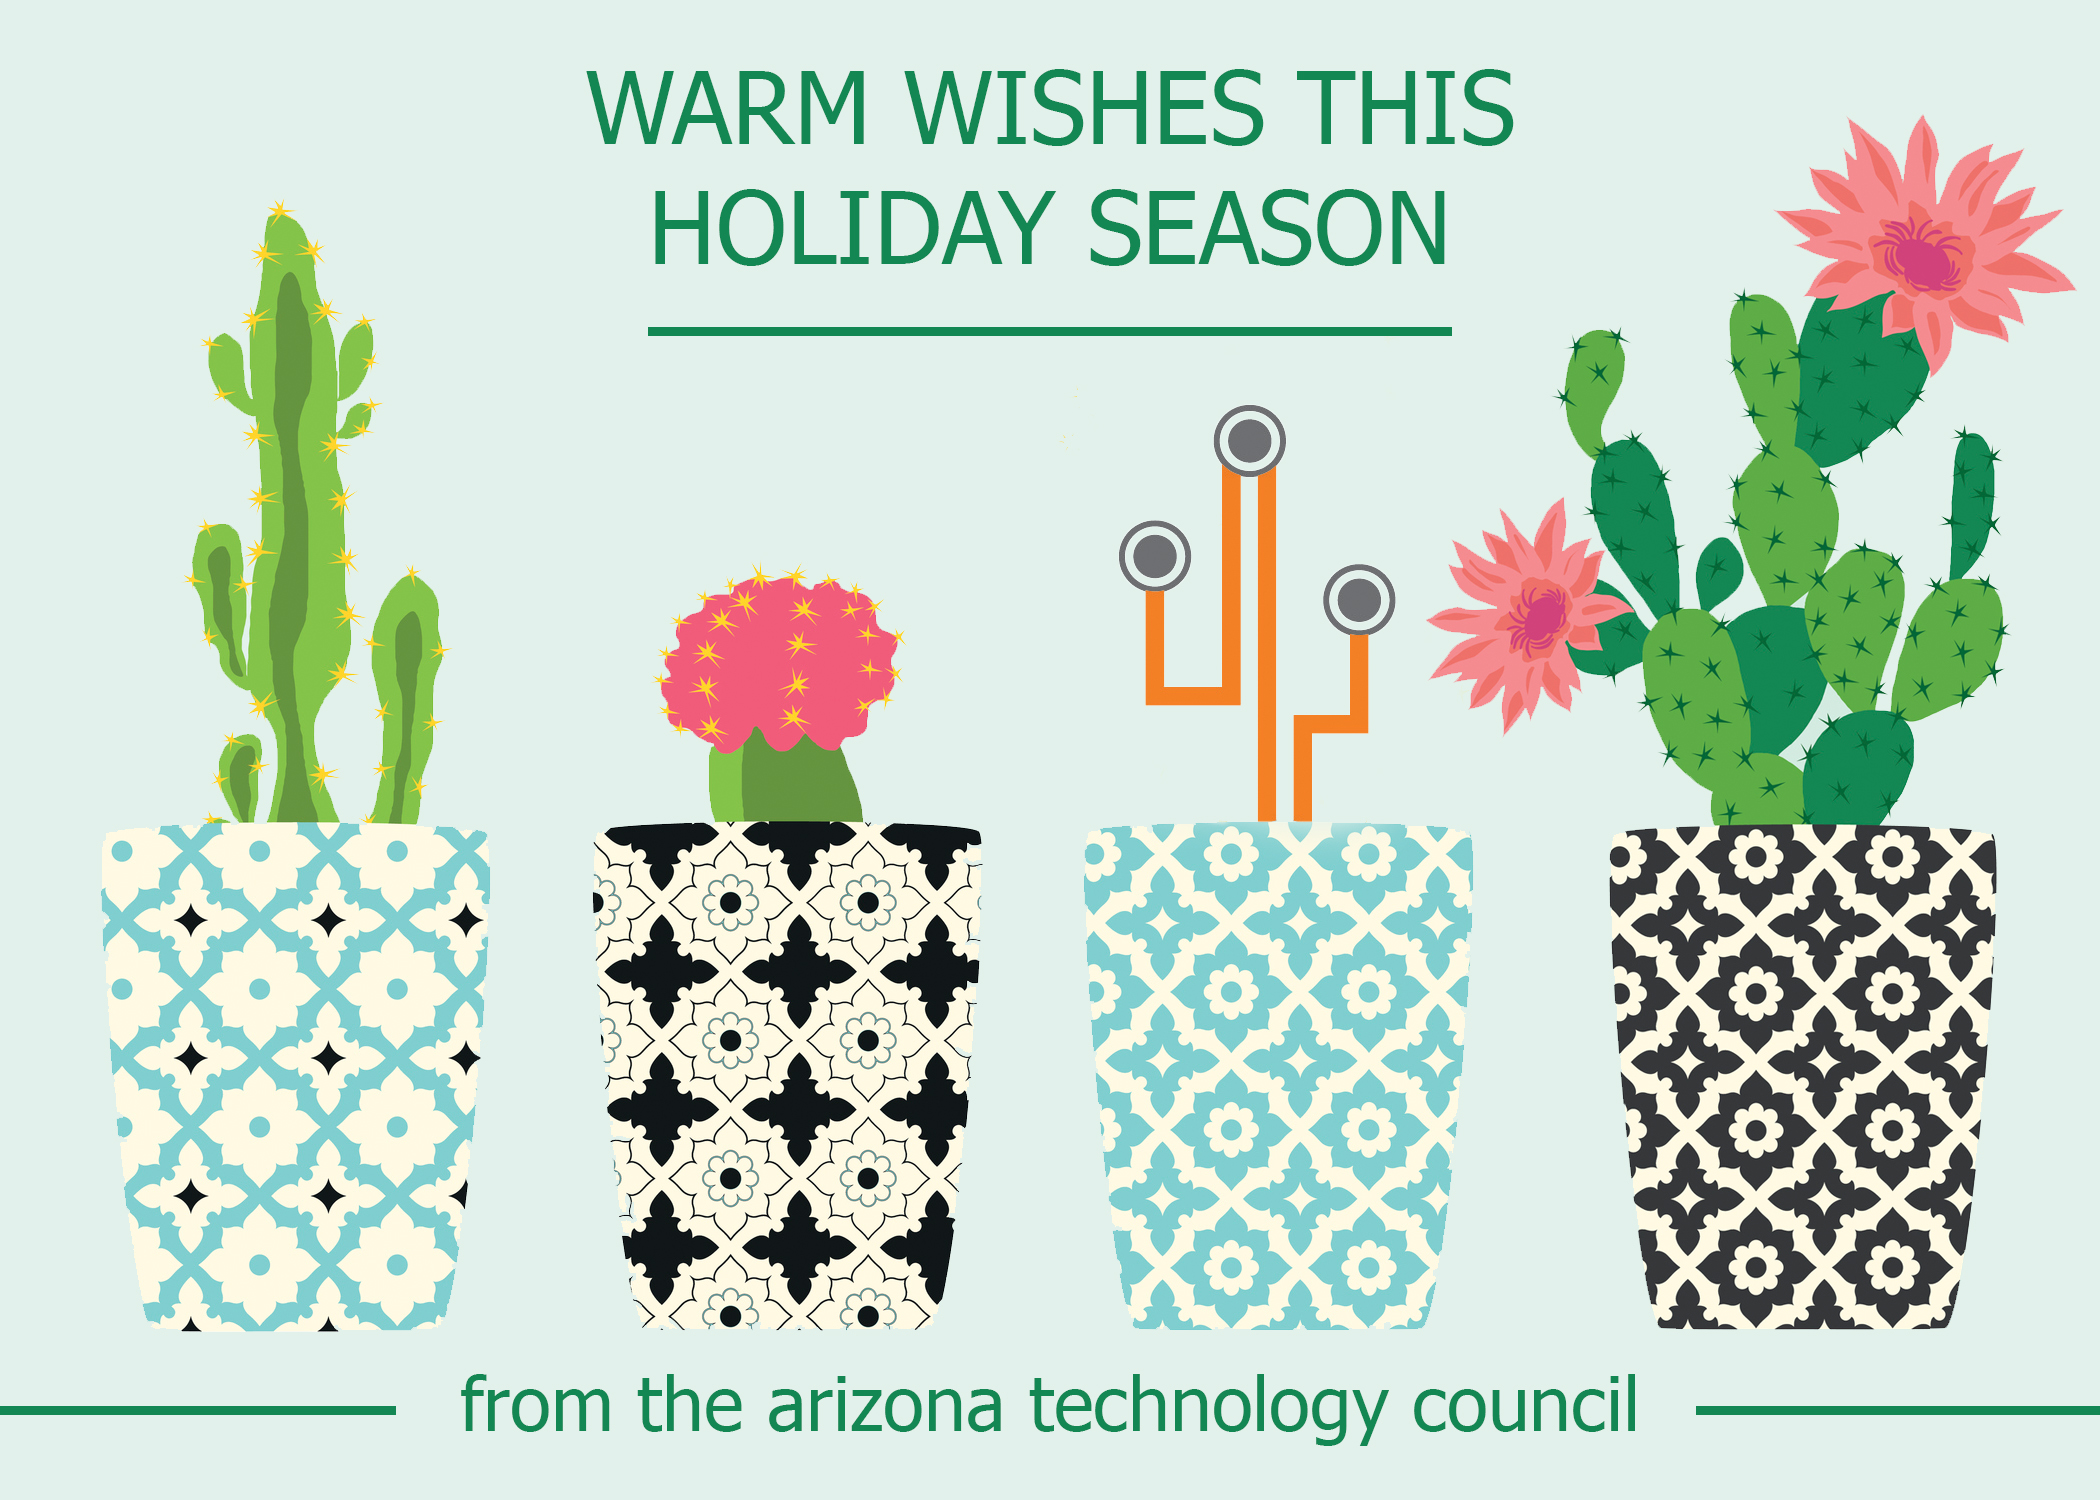 Warm Wishes this Holiday Season from the Arizona Technology Council